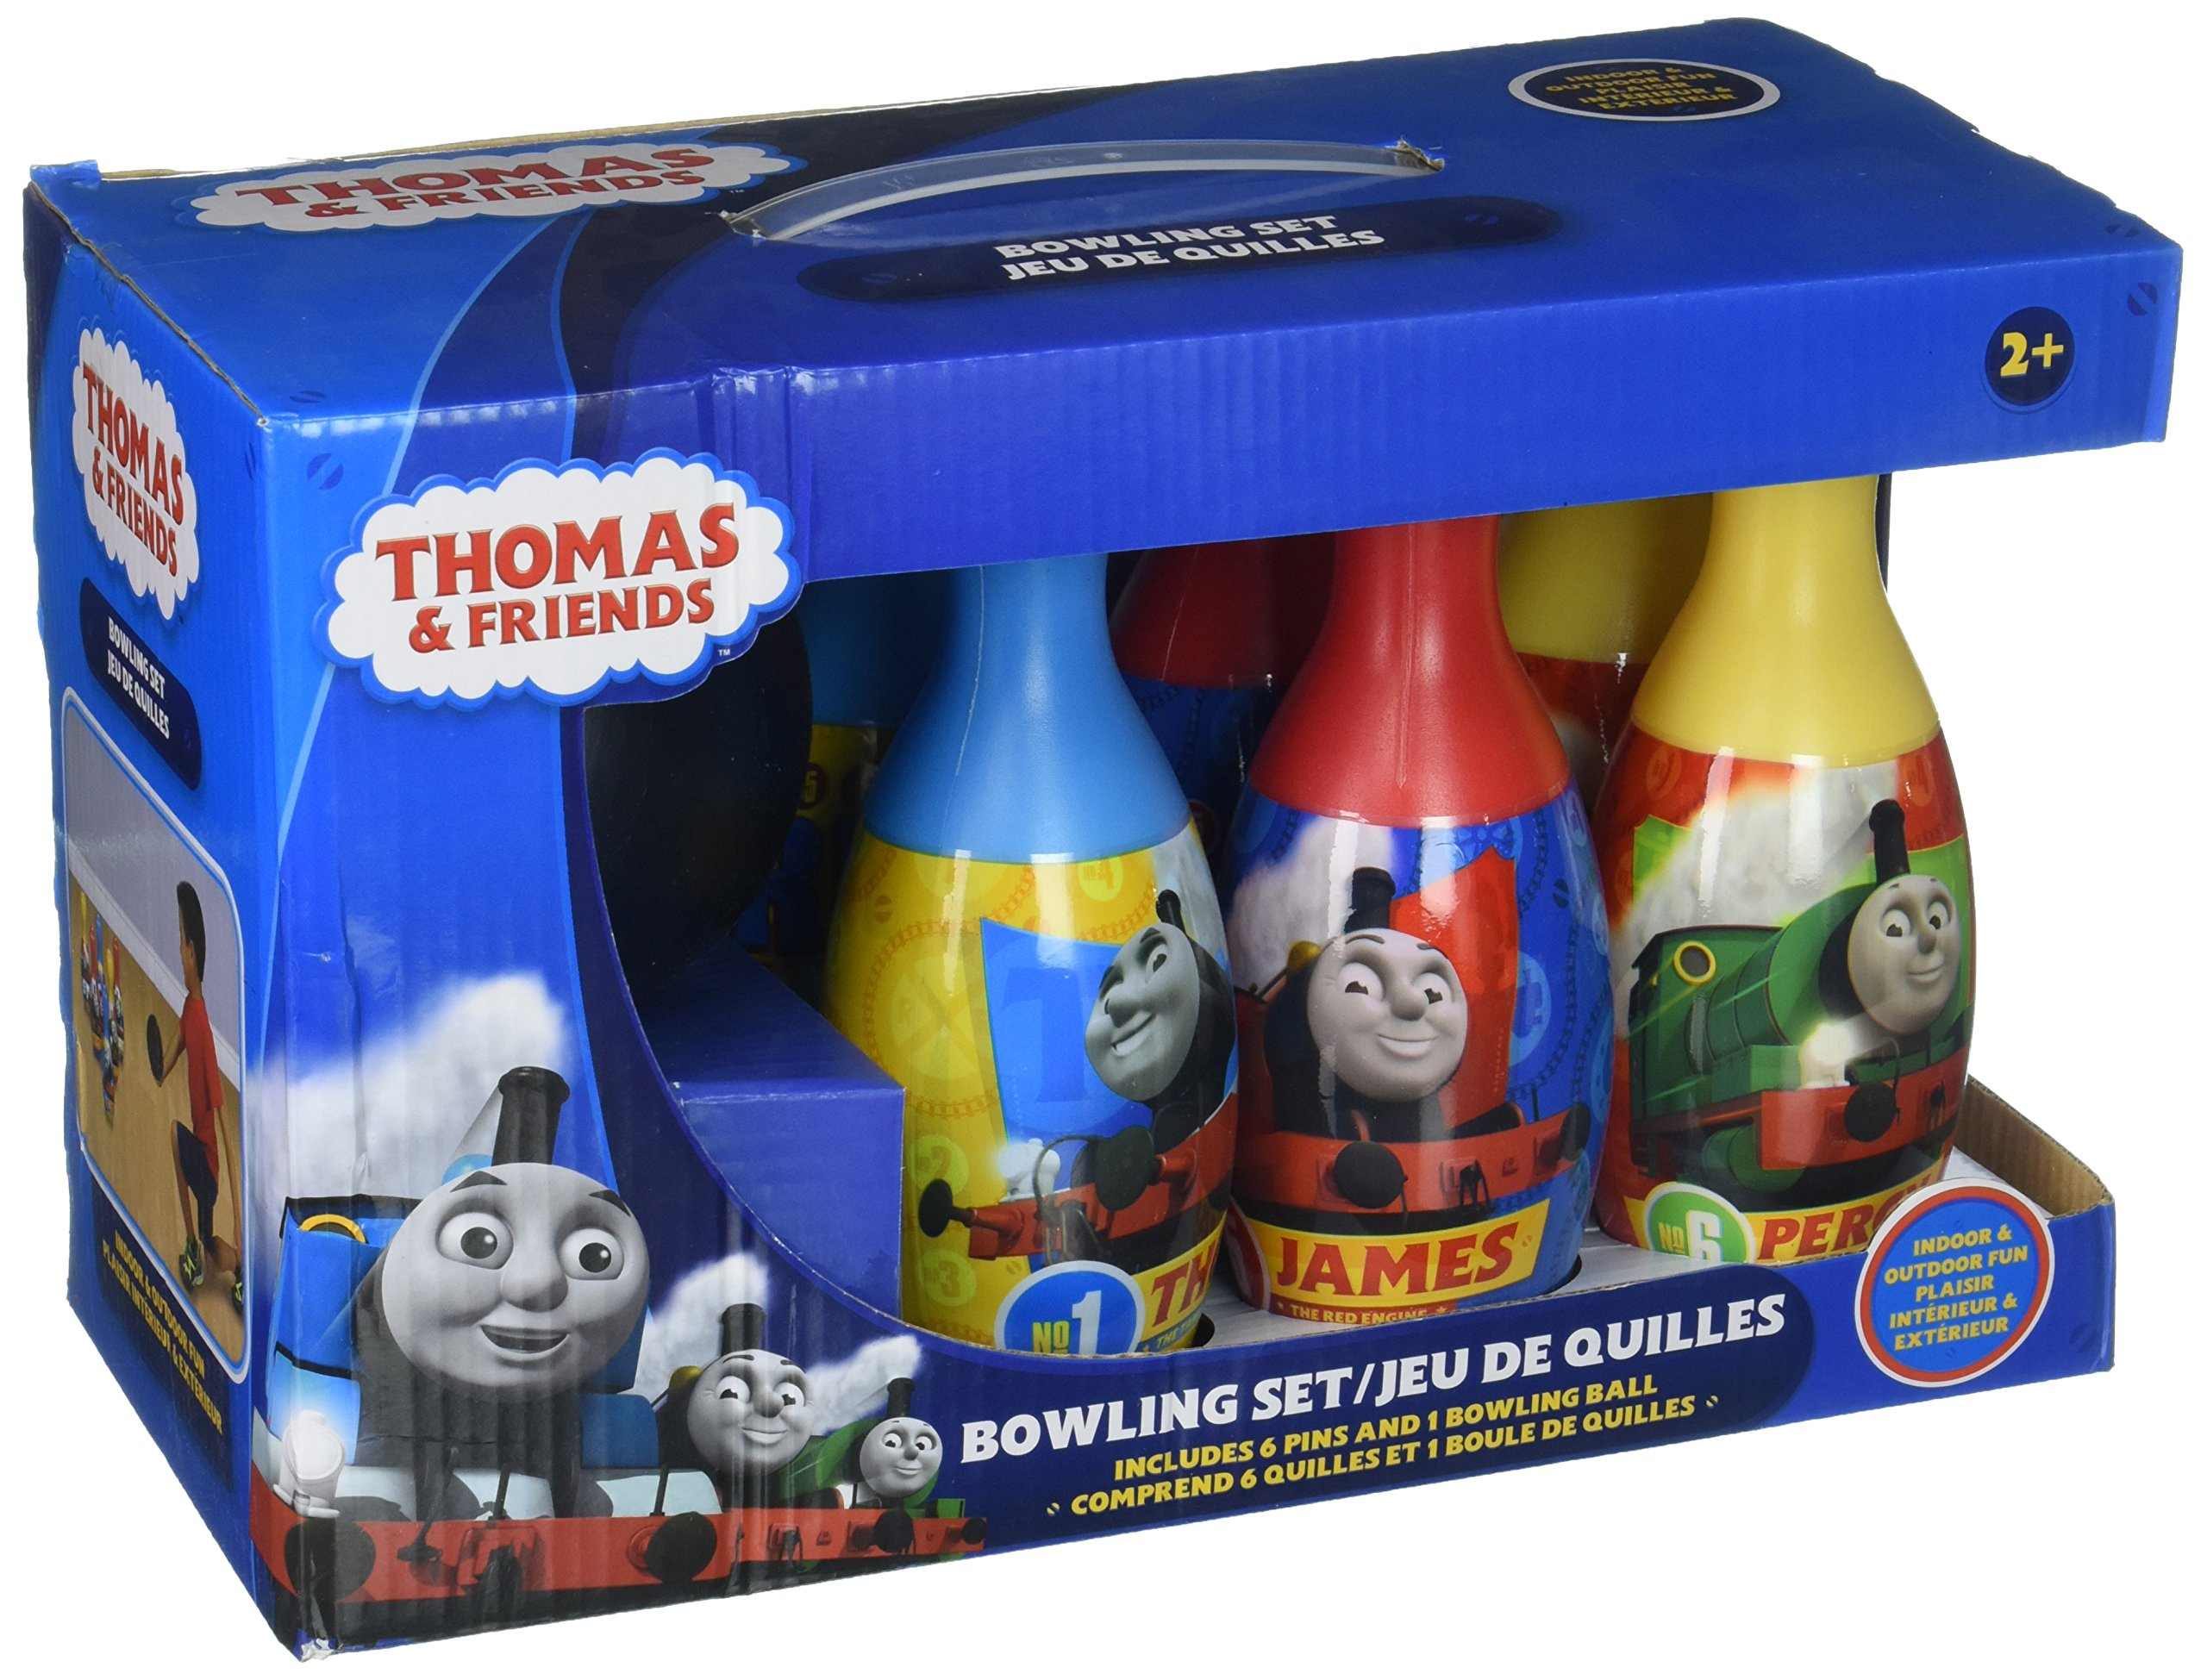 Thomas The Train & Friends Bowling Set in Display Box